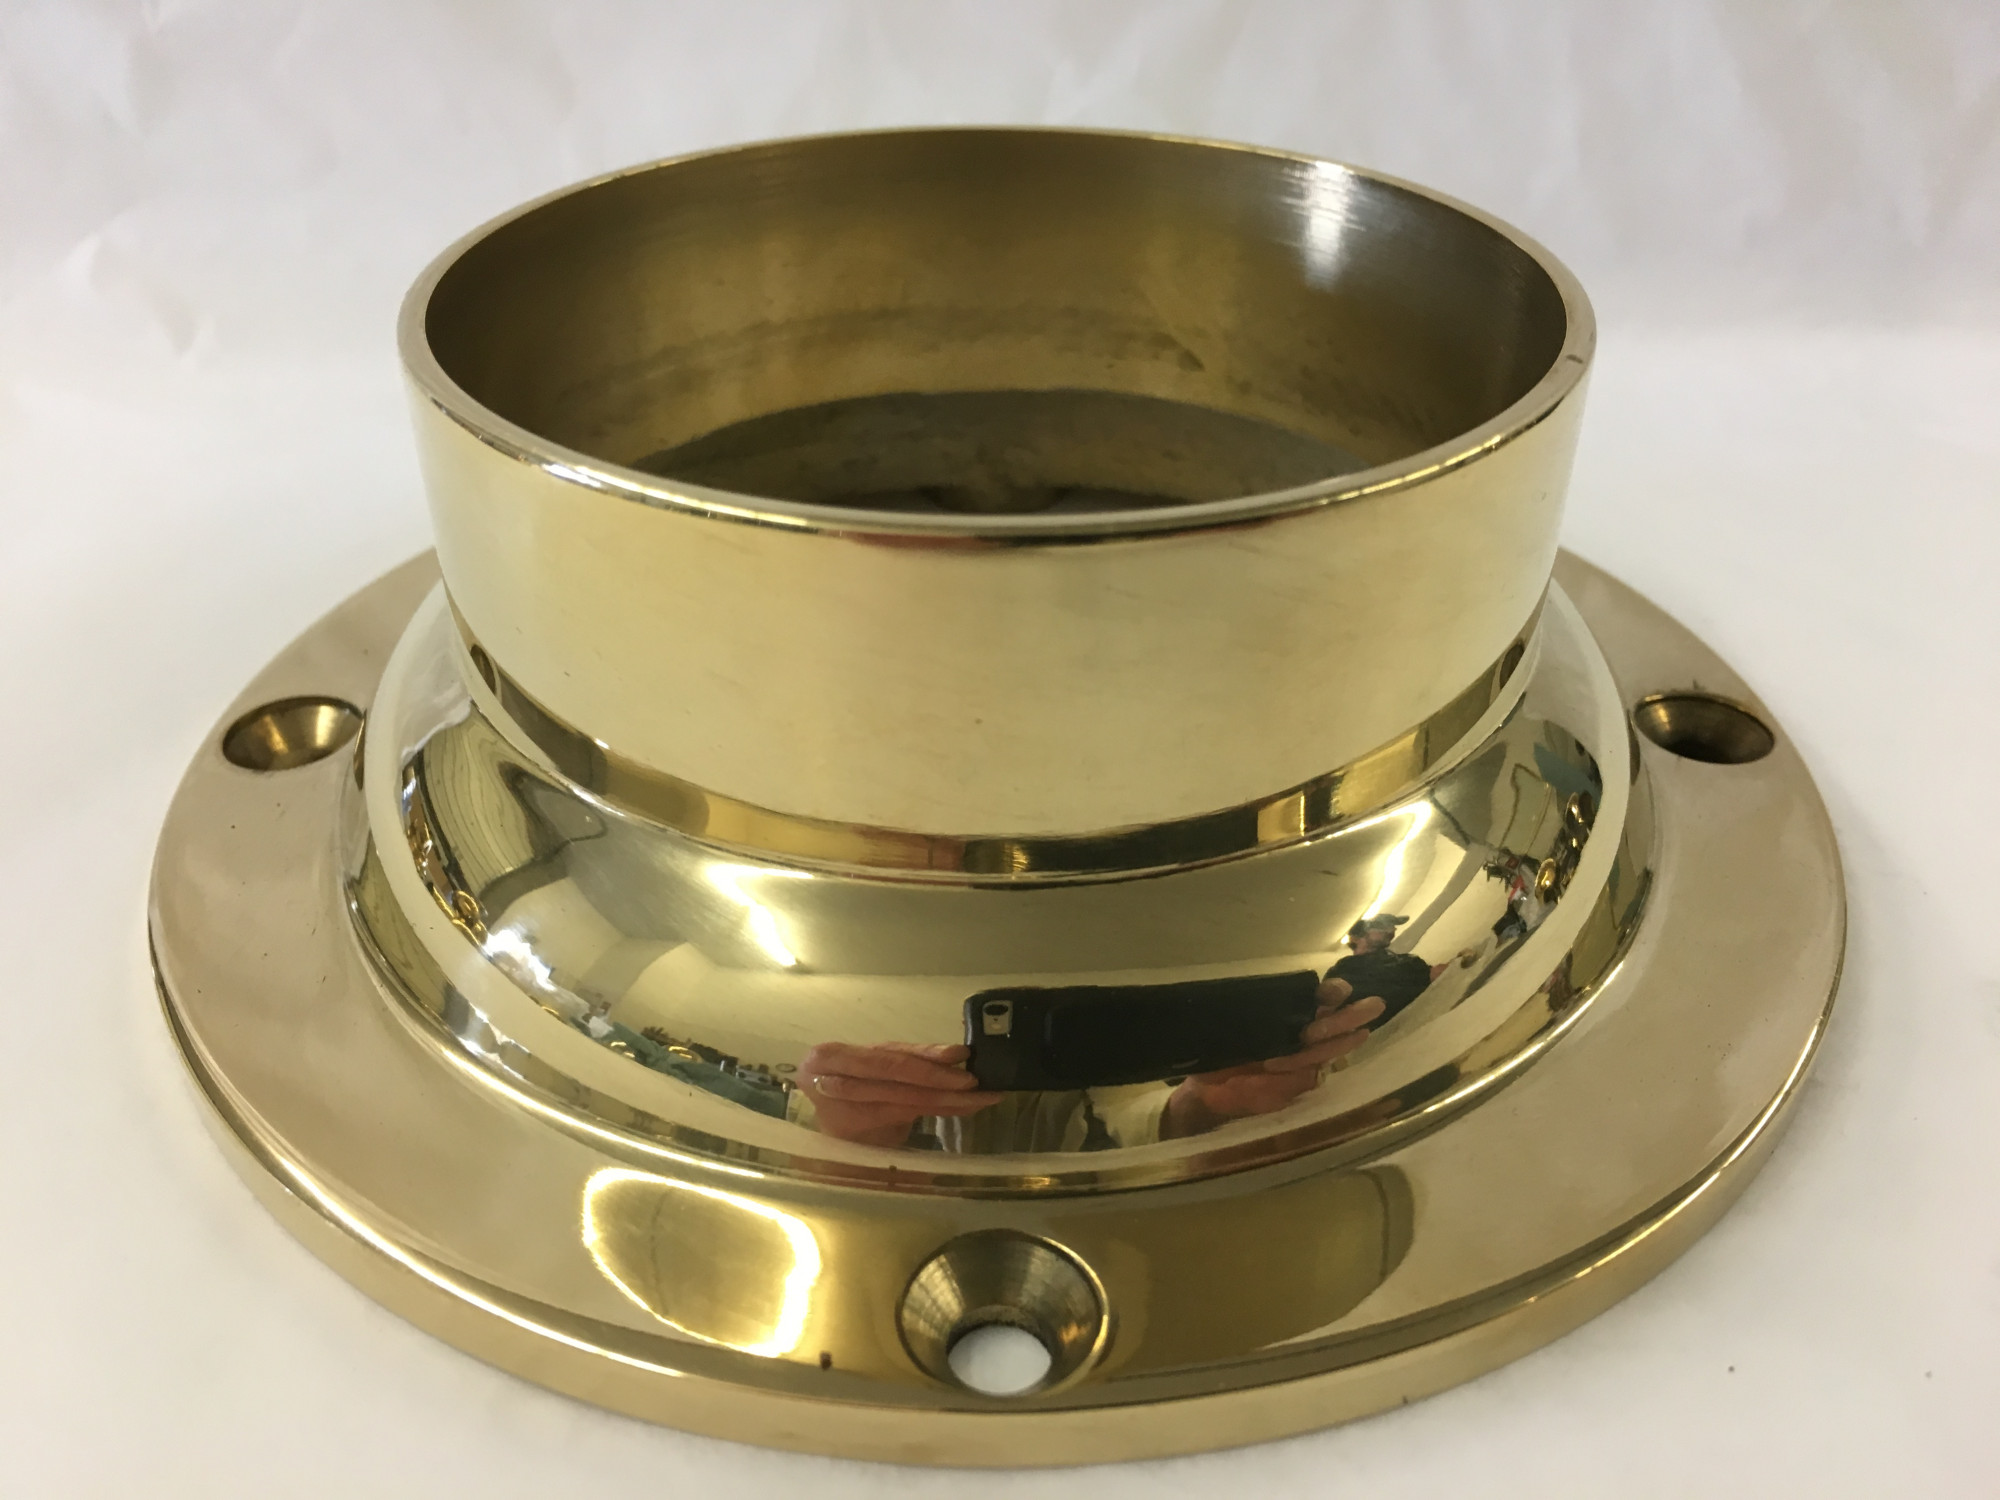 Polished Brass Standard Mounting Flange (3in x 5-1/2in)